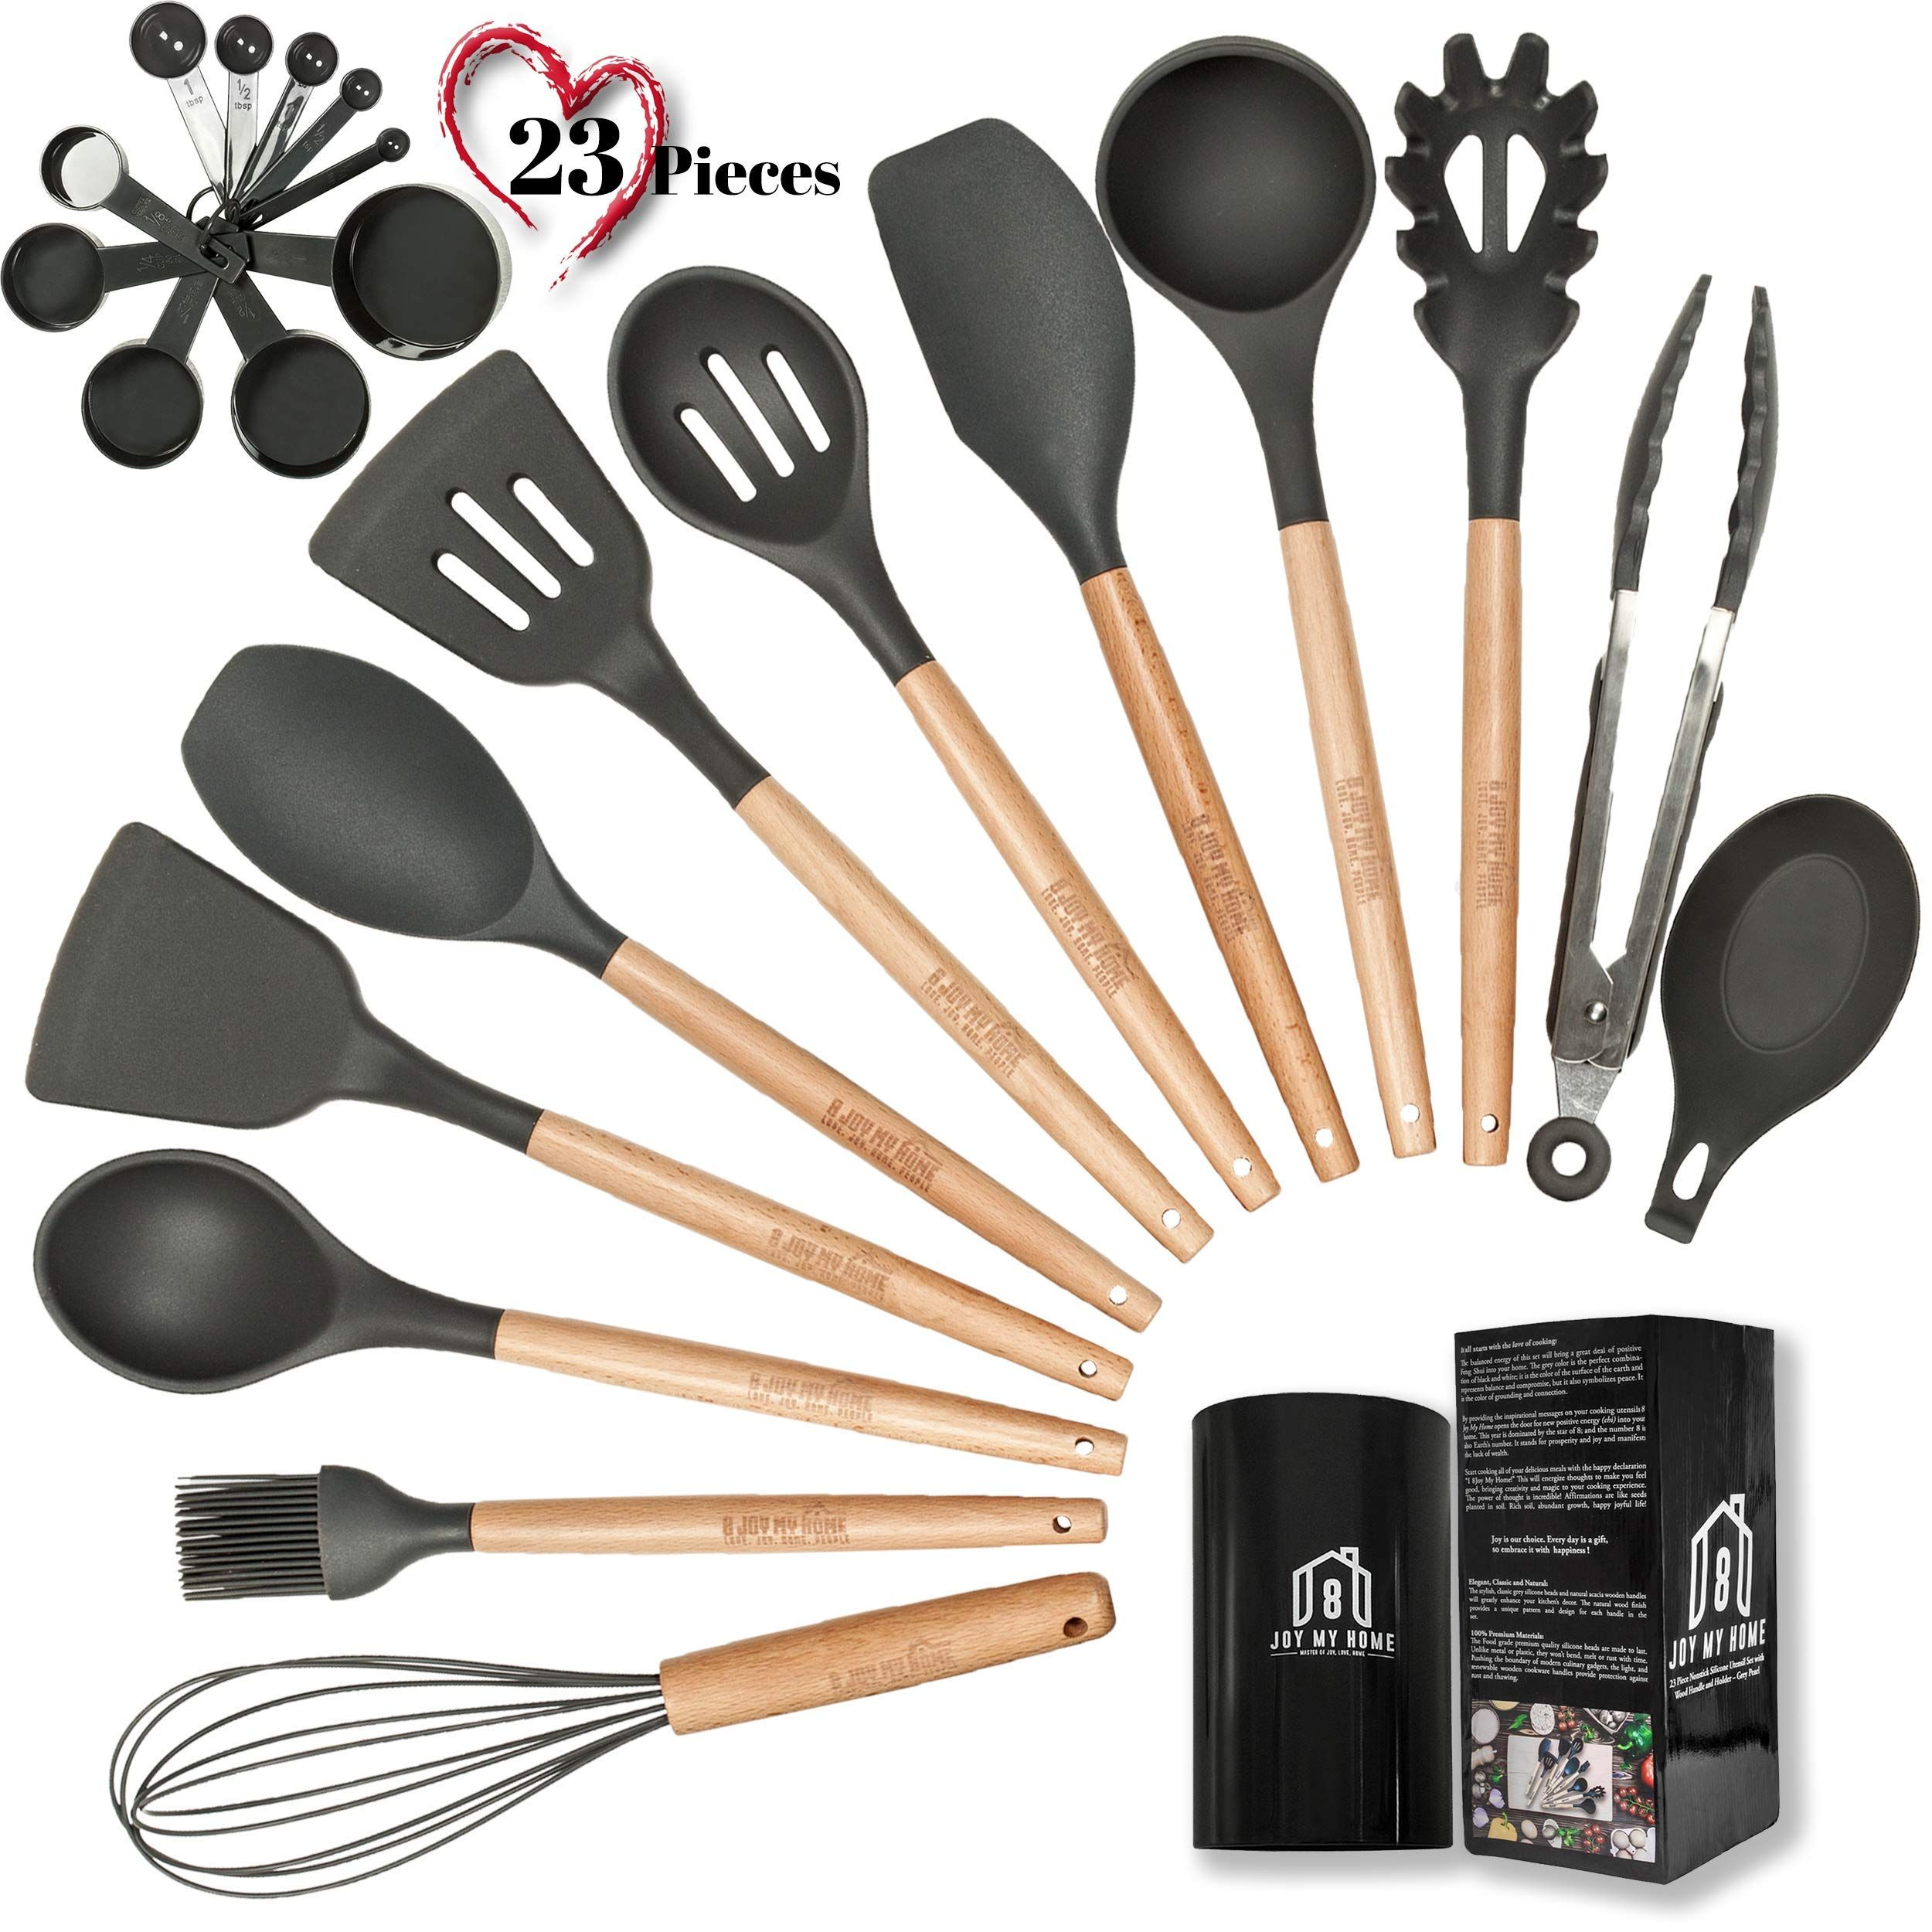 Grey Silicone Cooking Utensils With Wooden Handles 23pcs Silicone